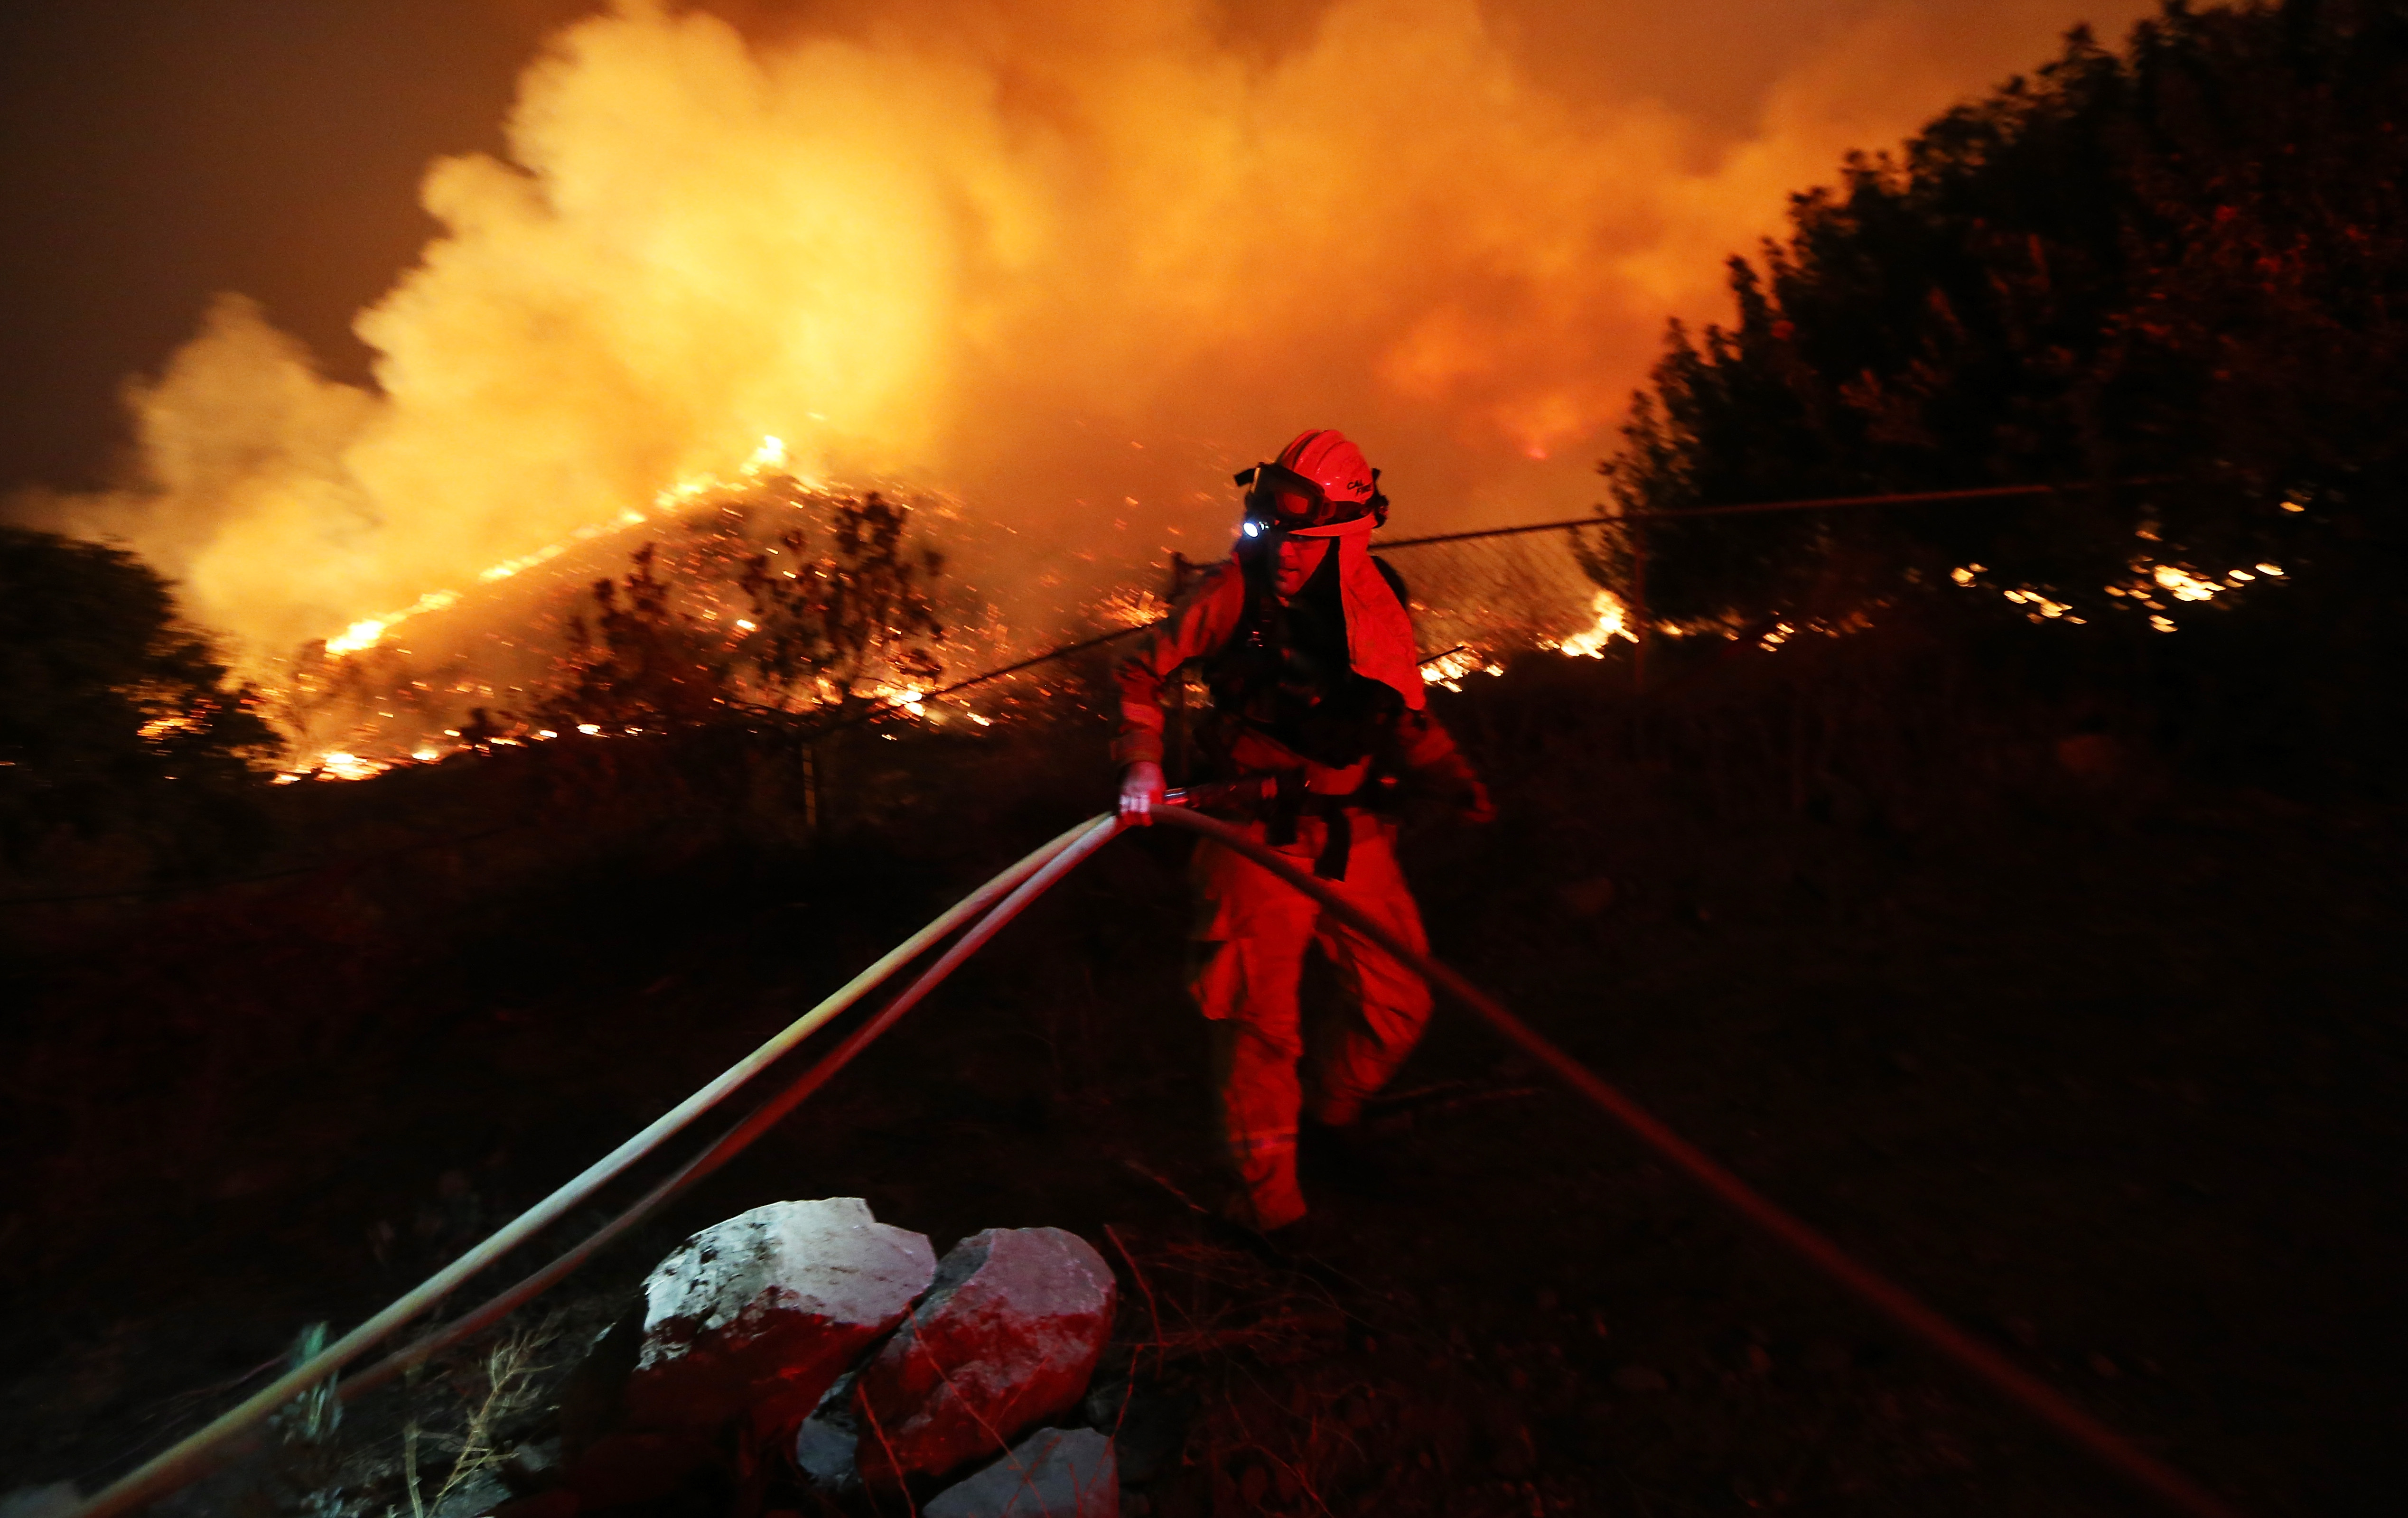 A firefighter works as the Holy Fire burns near homes on August 9, 2018 in Lake Elsinore, California. The fire continues to grow amidst a heat wave and has now burned 10,236 acres while remaining just five percent contained.